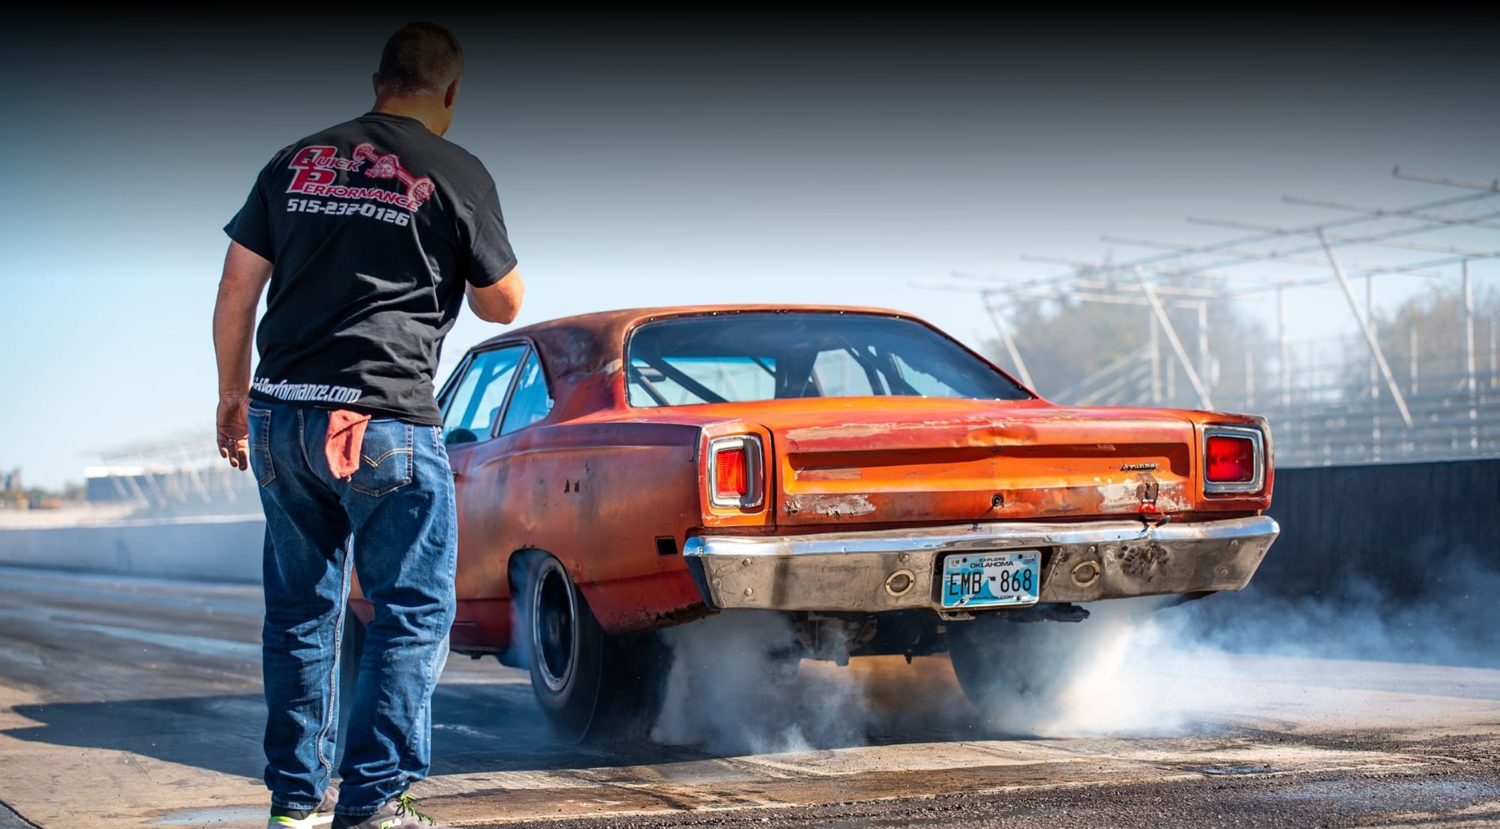 TETANUS: Ralph Bell's KB® Hemi Powered Roadrunner